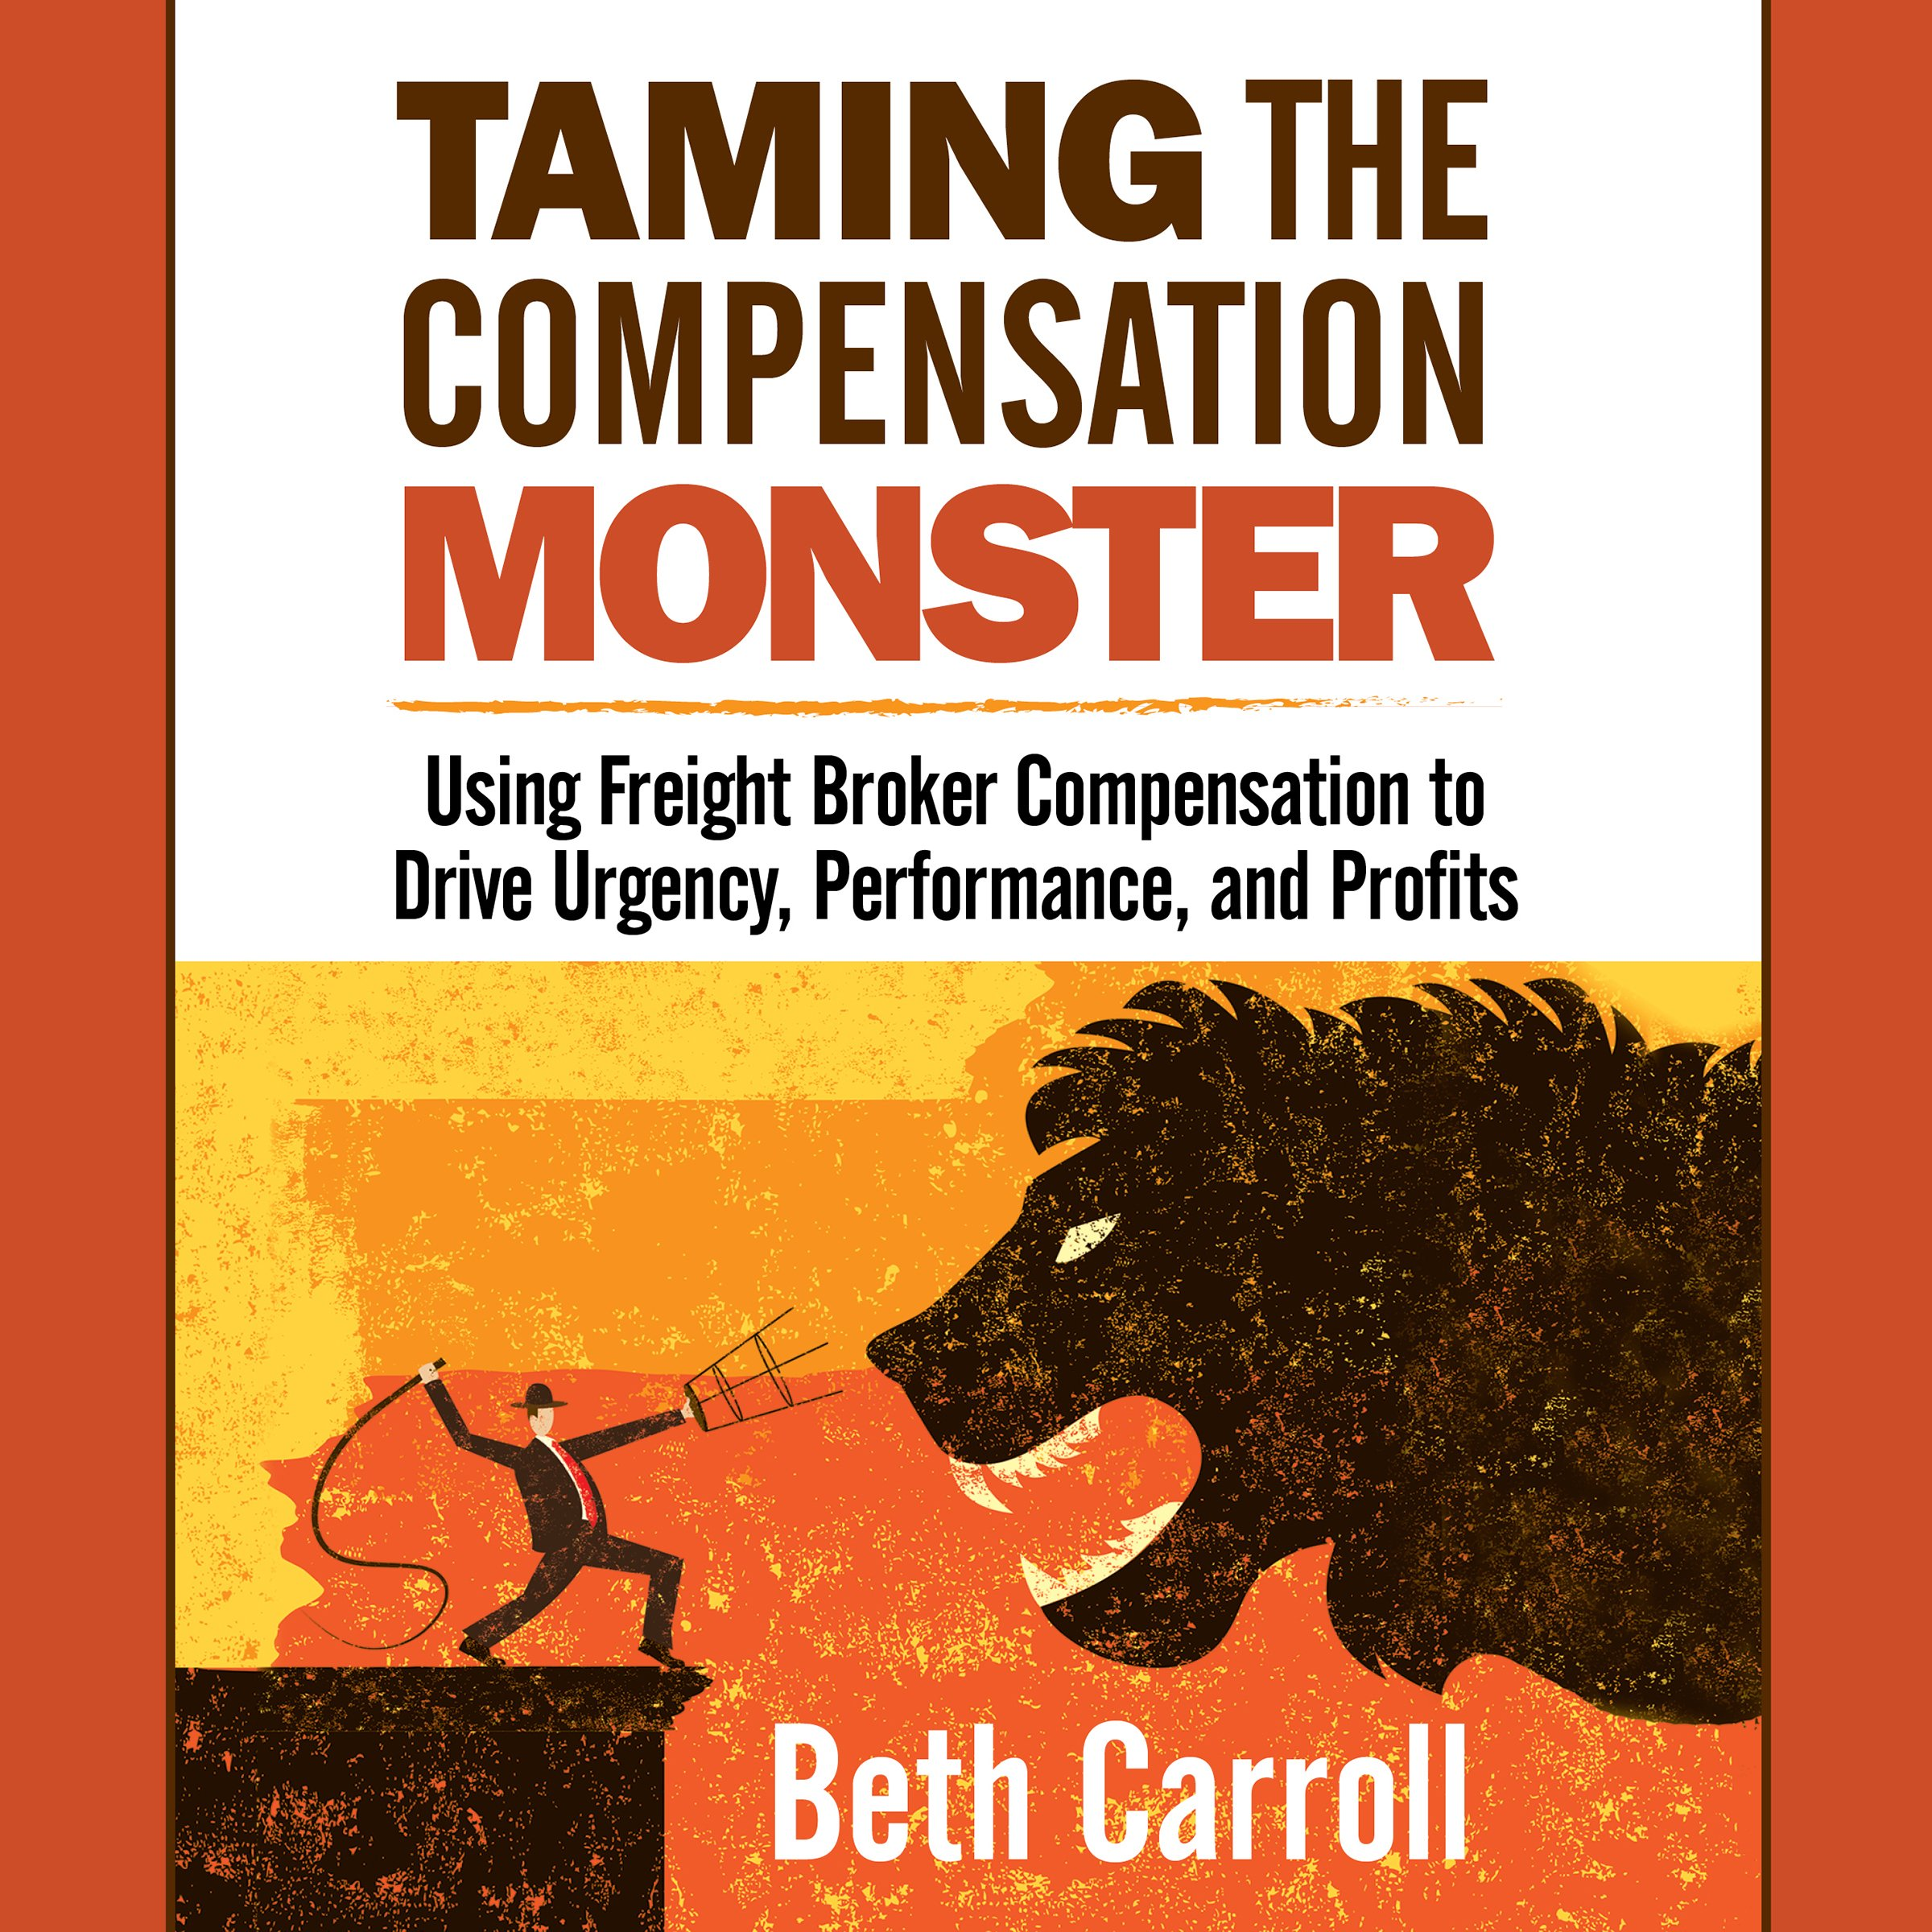 Taming the Compensation Monster: Using Freight Broker Compensation to Drive Urgency, Performance, and Profits